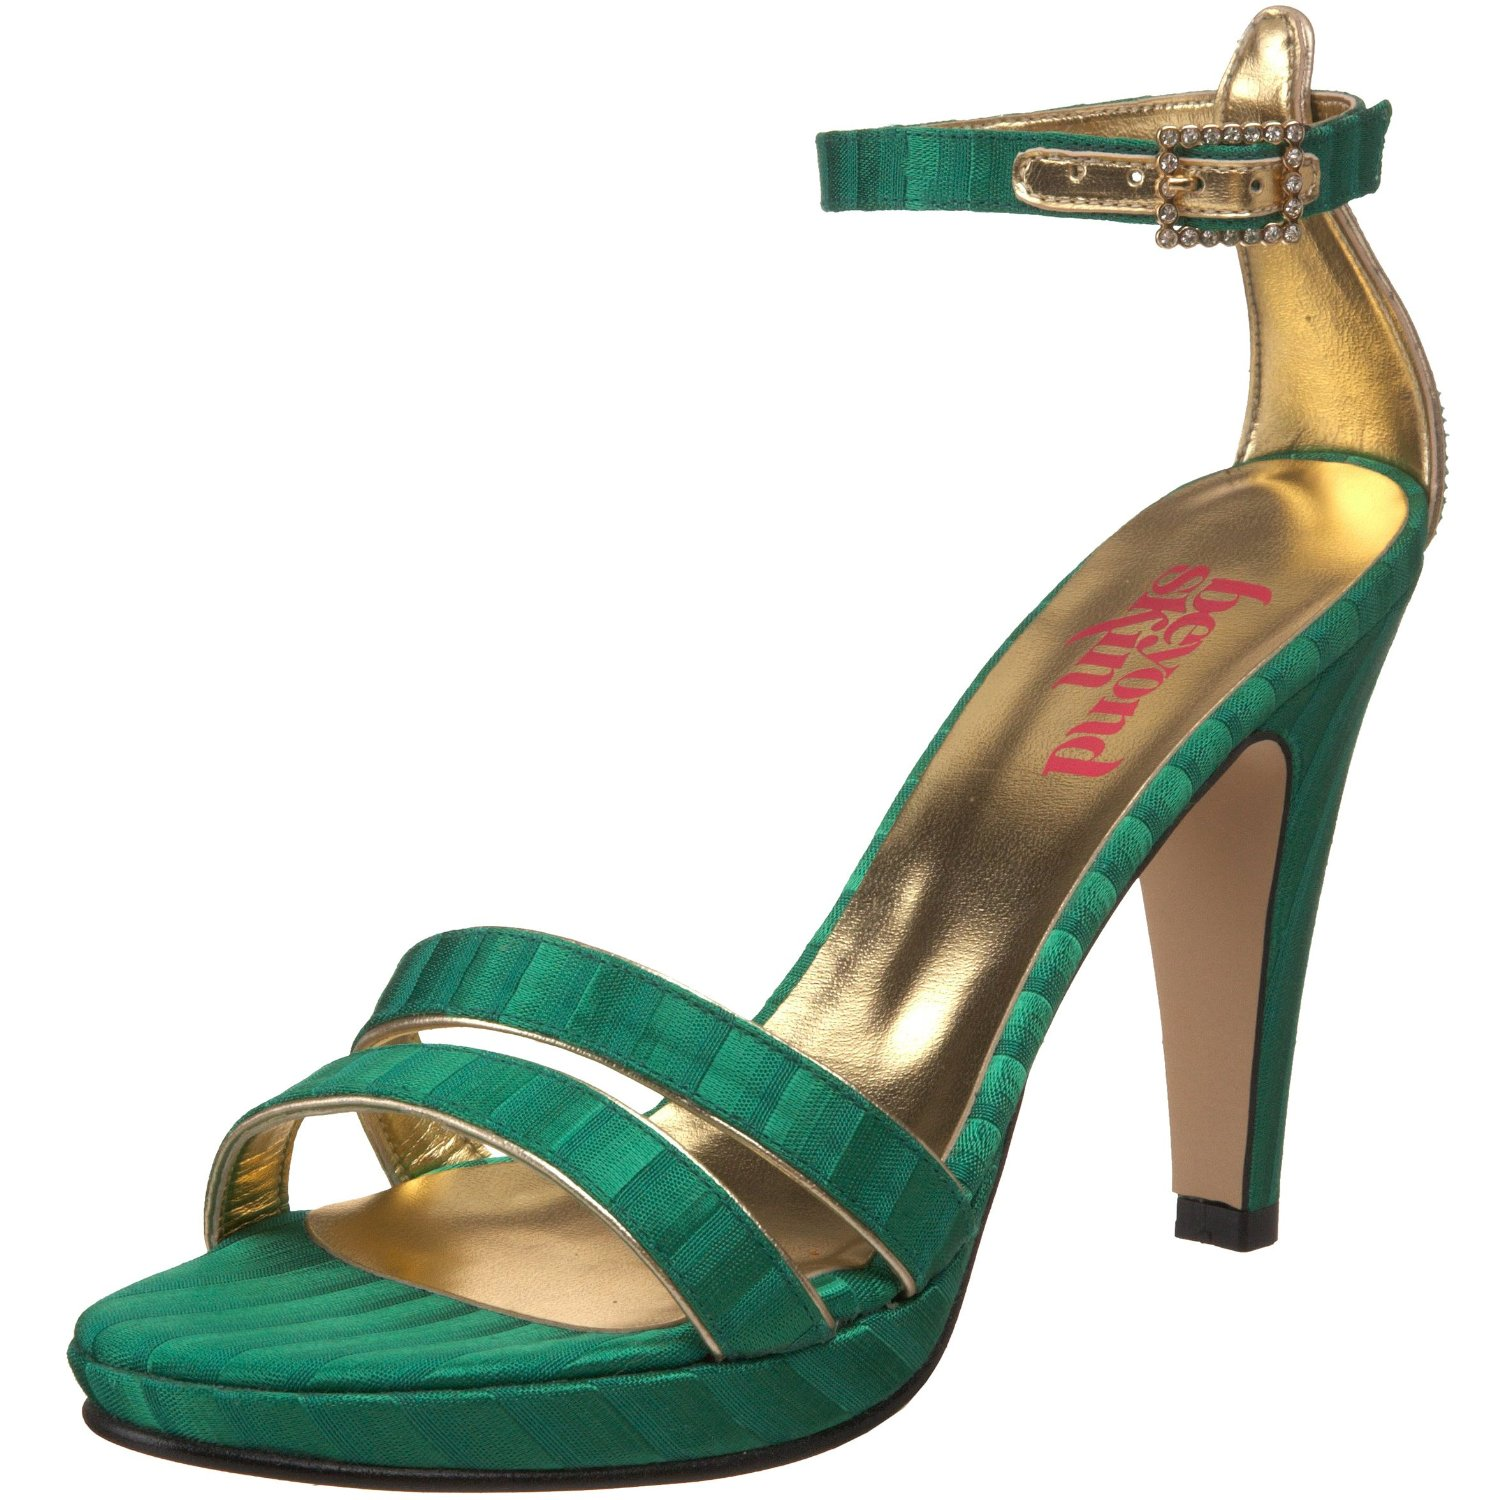 Green vegan party heels